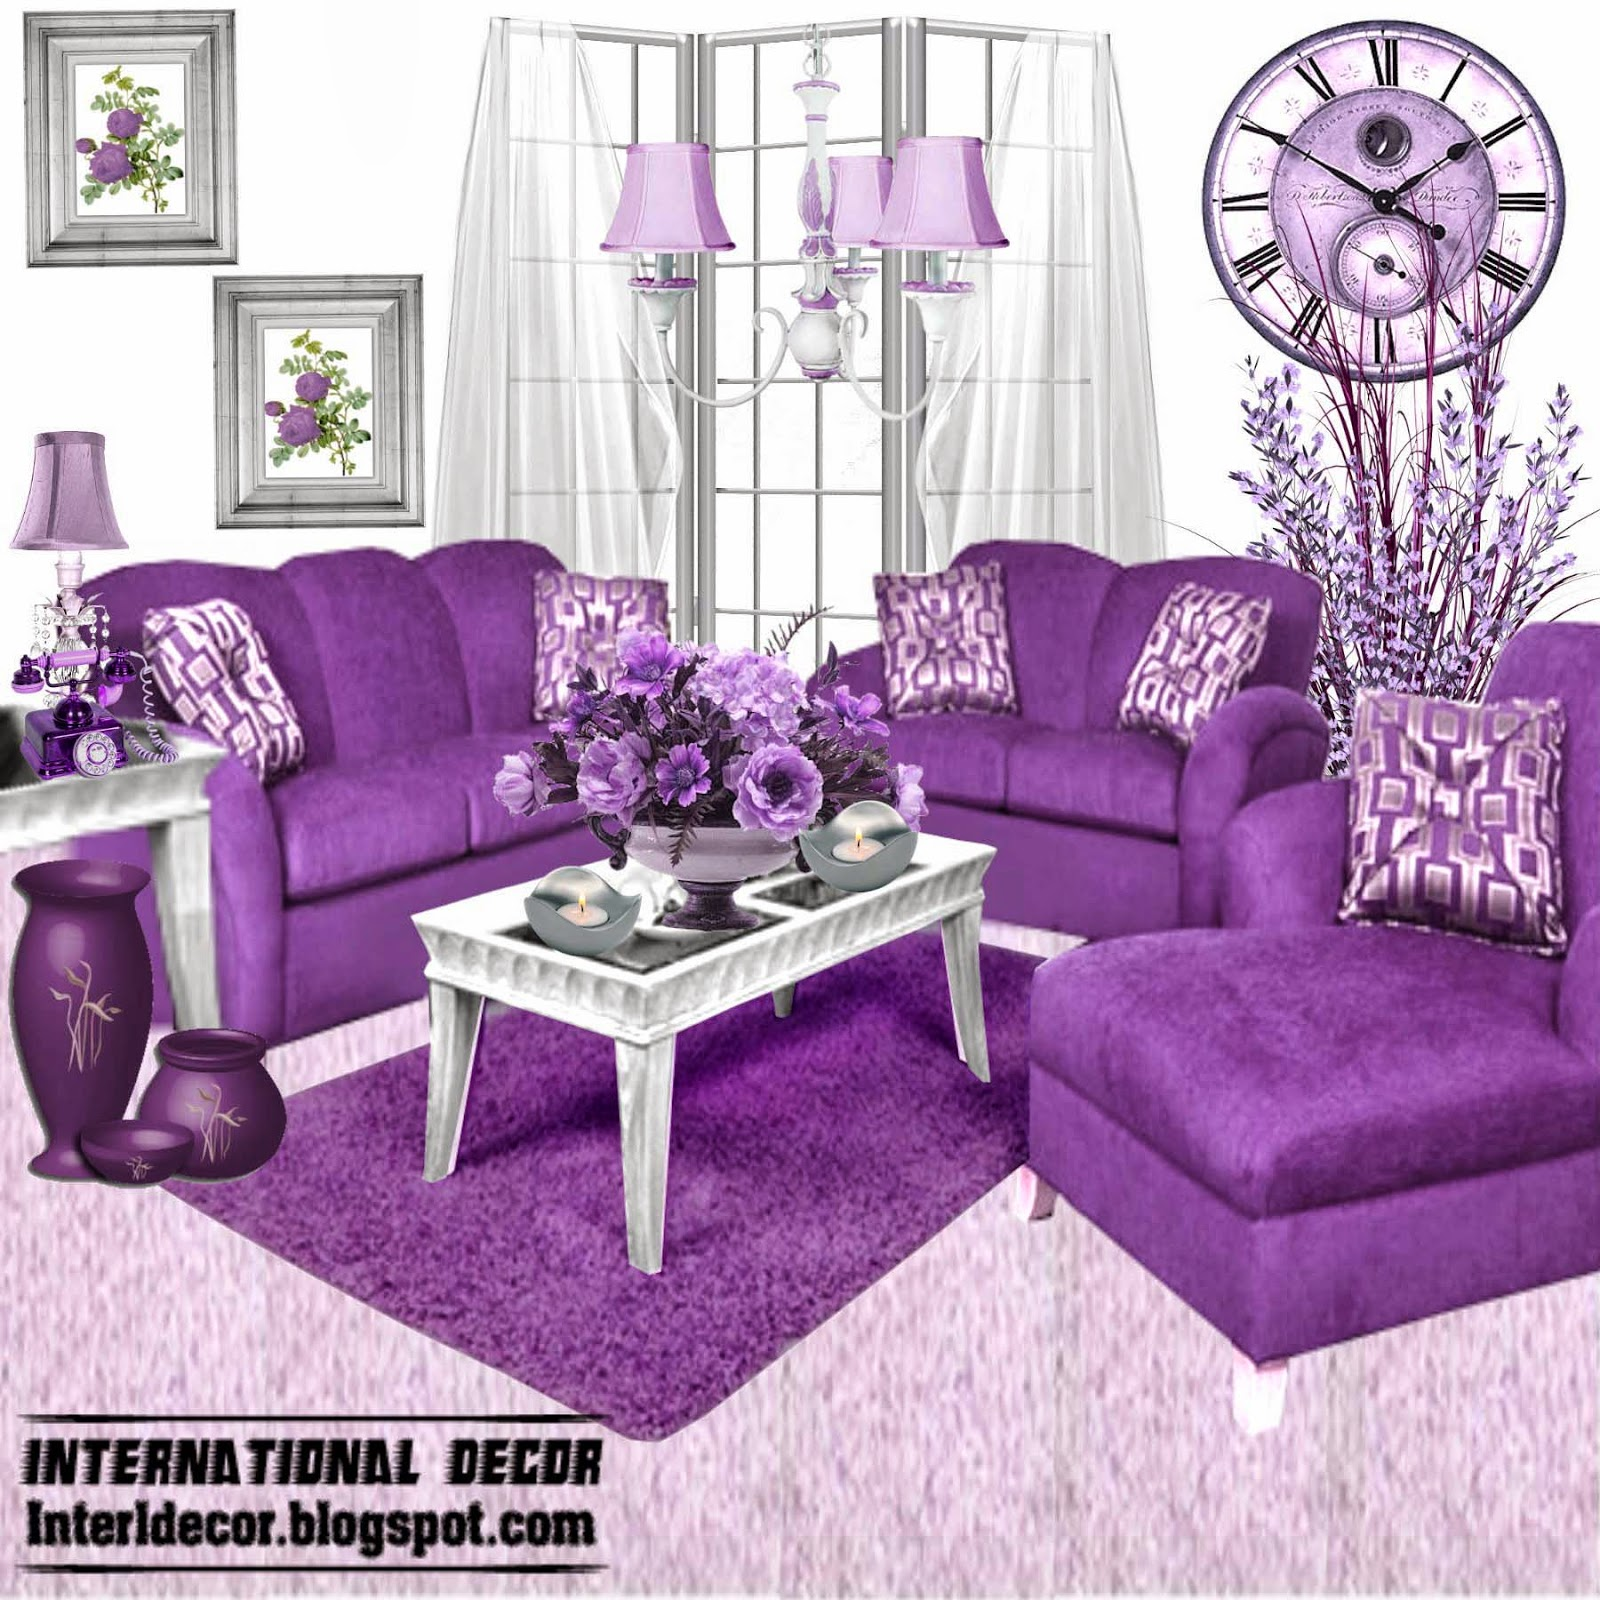 Purple furniture for the home pinterest purple for Sitting room furniture